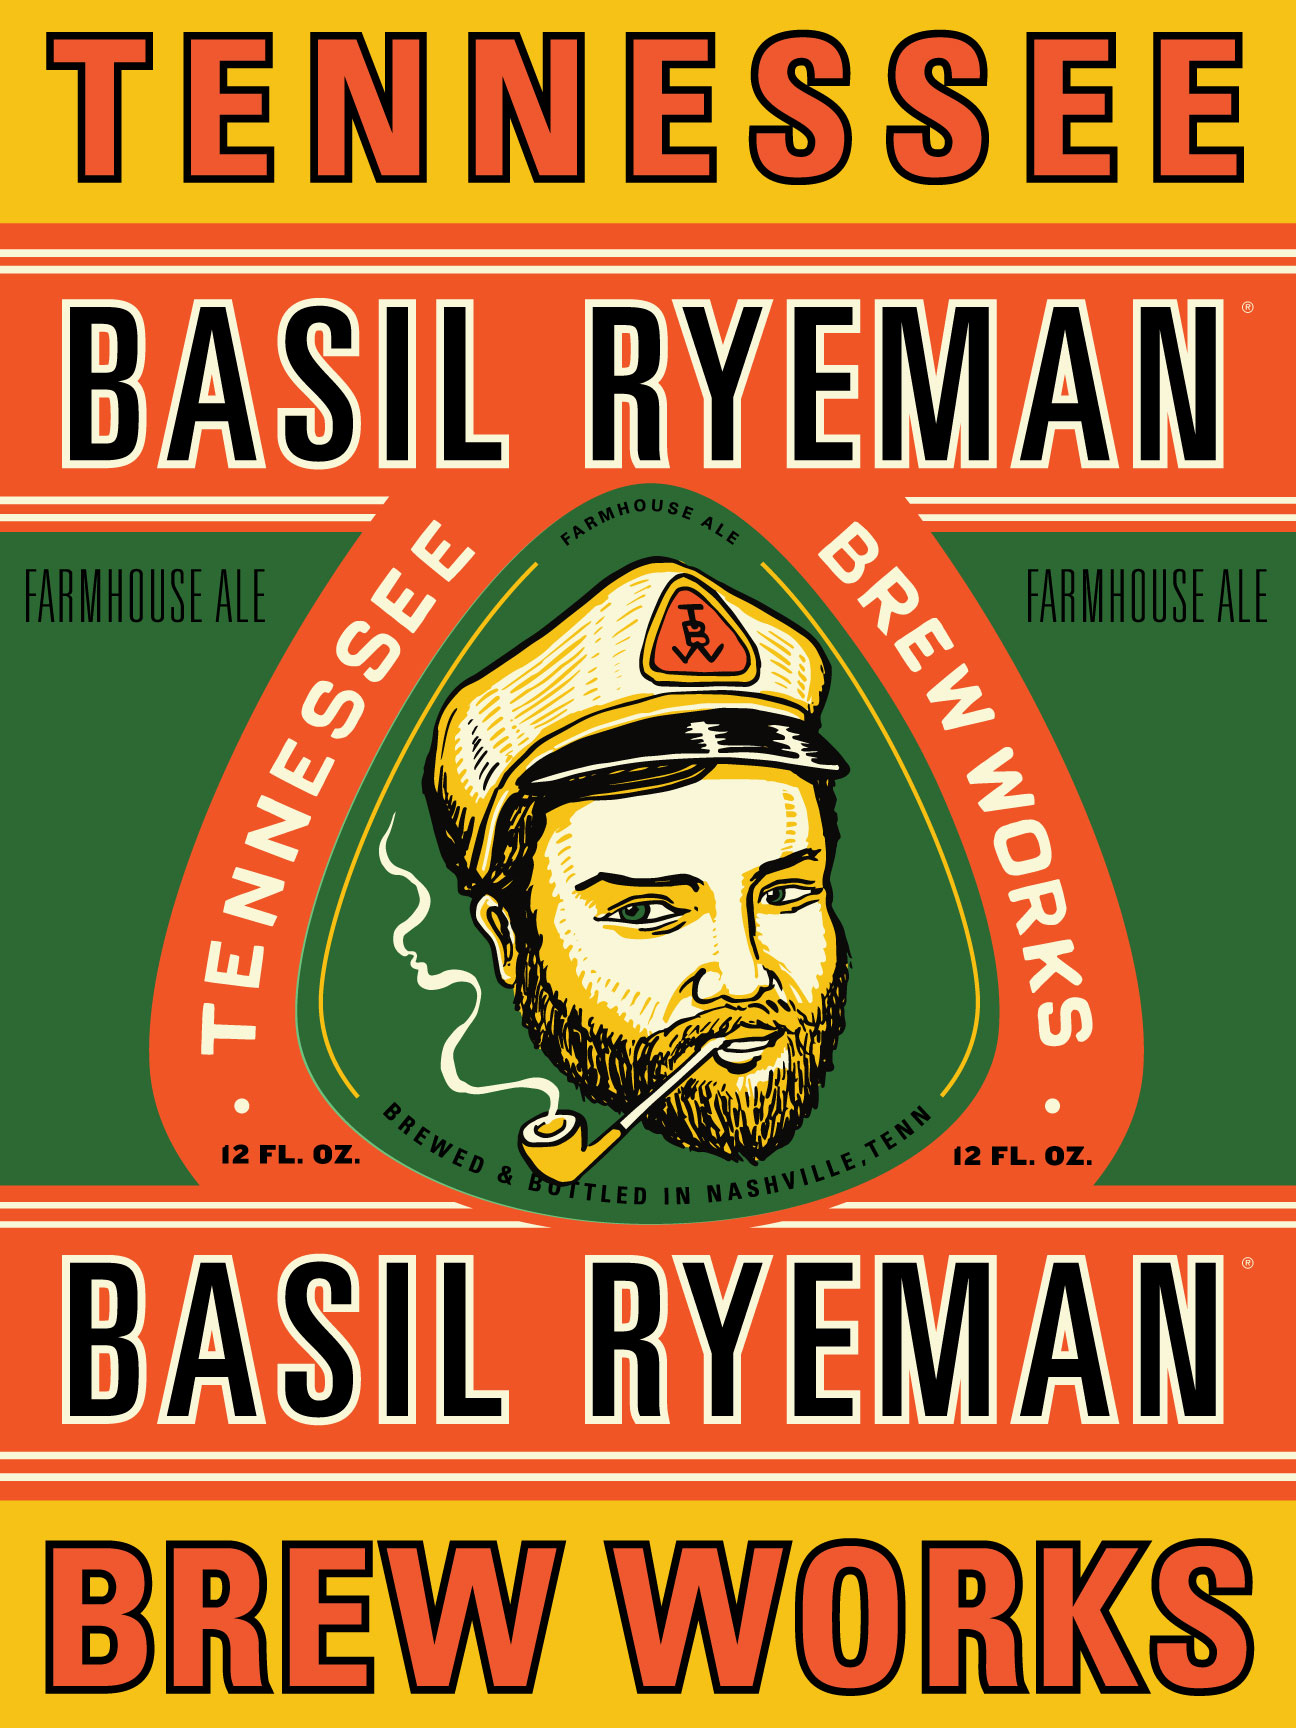 BASIL-RYEMAN-OUTLINED-POSTER.jpg